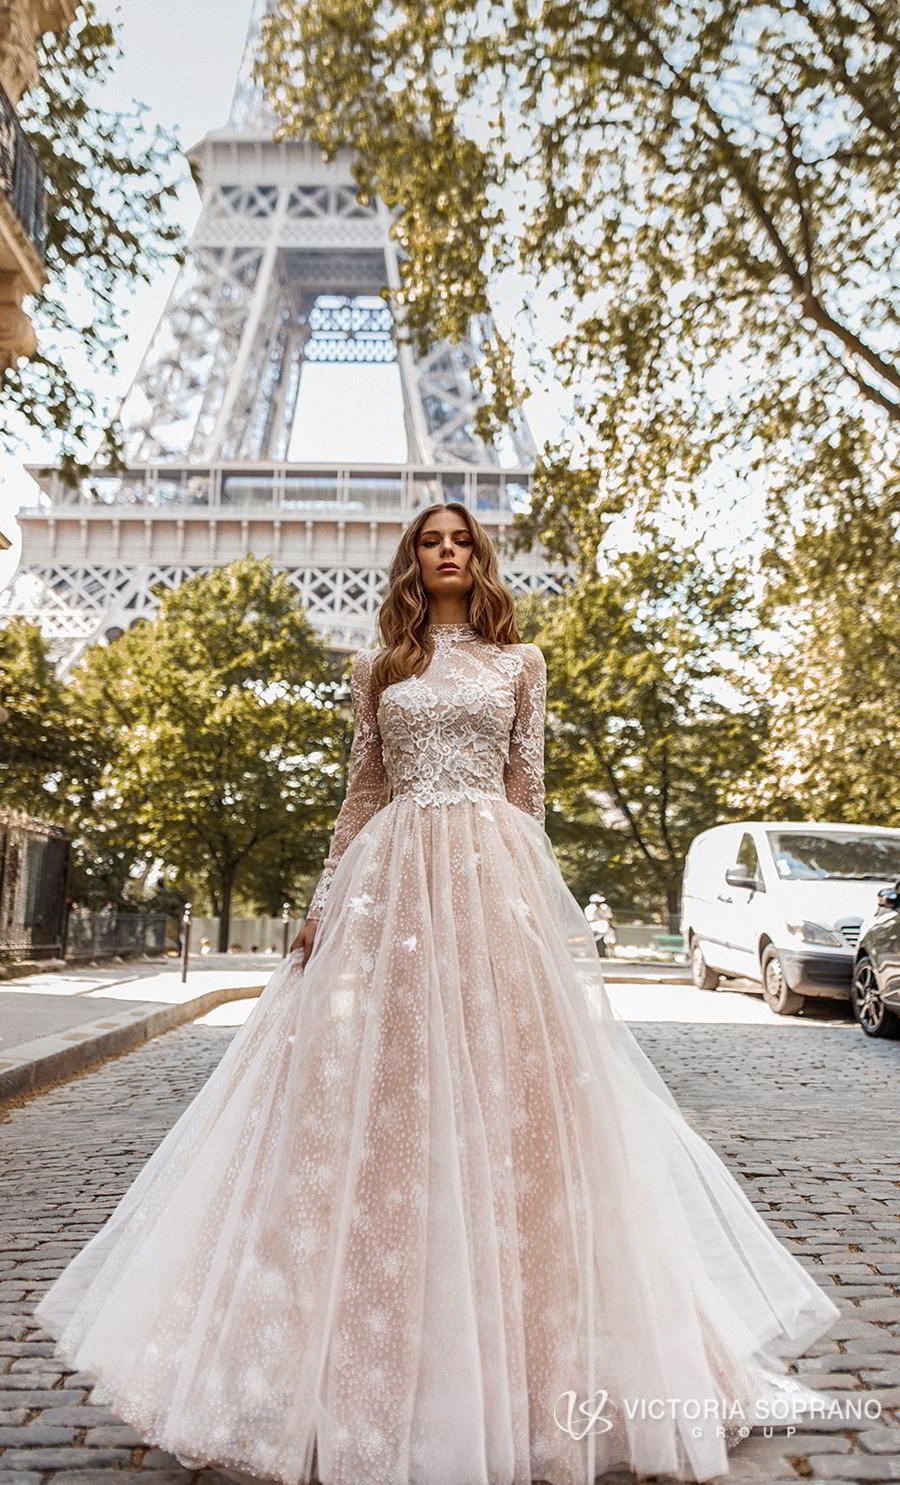 victoria soprano 2019 bridal long sleeves high neck heavily embellished bodice elegant princess a line wedding dress open low back chapel train (dior) mv